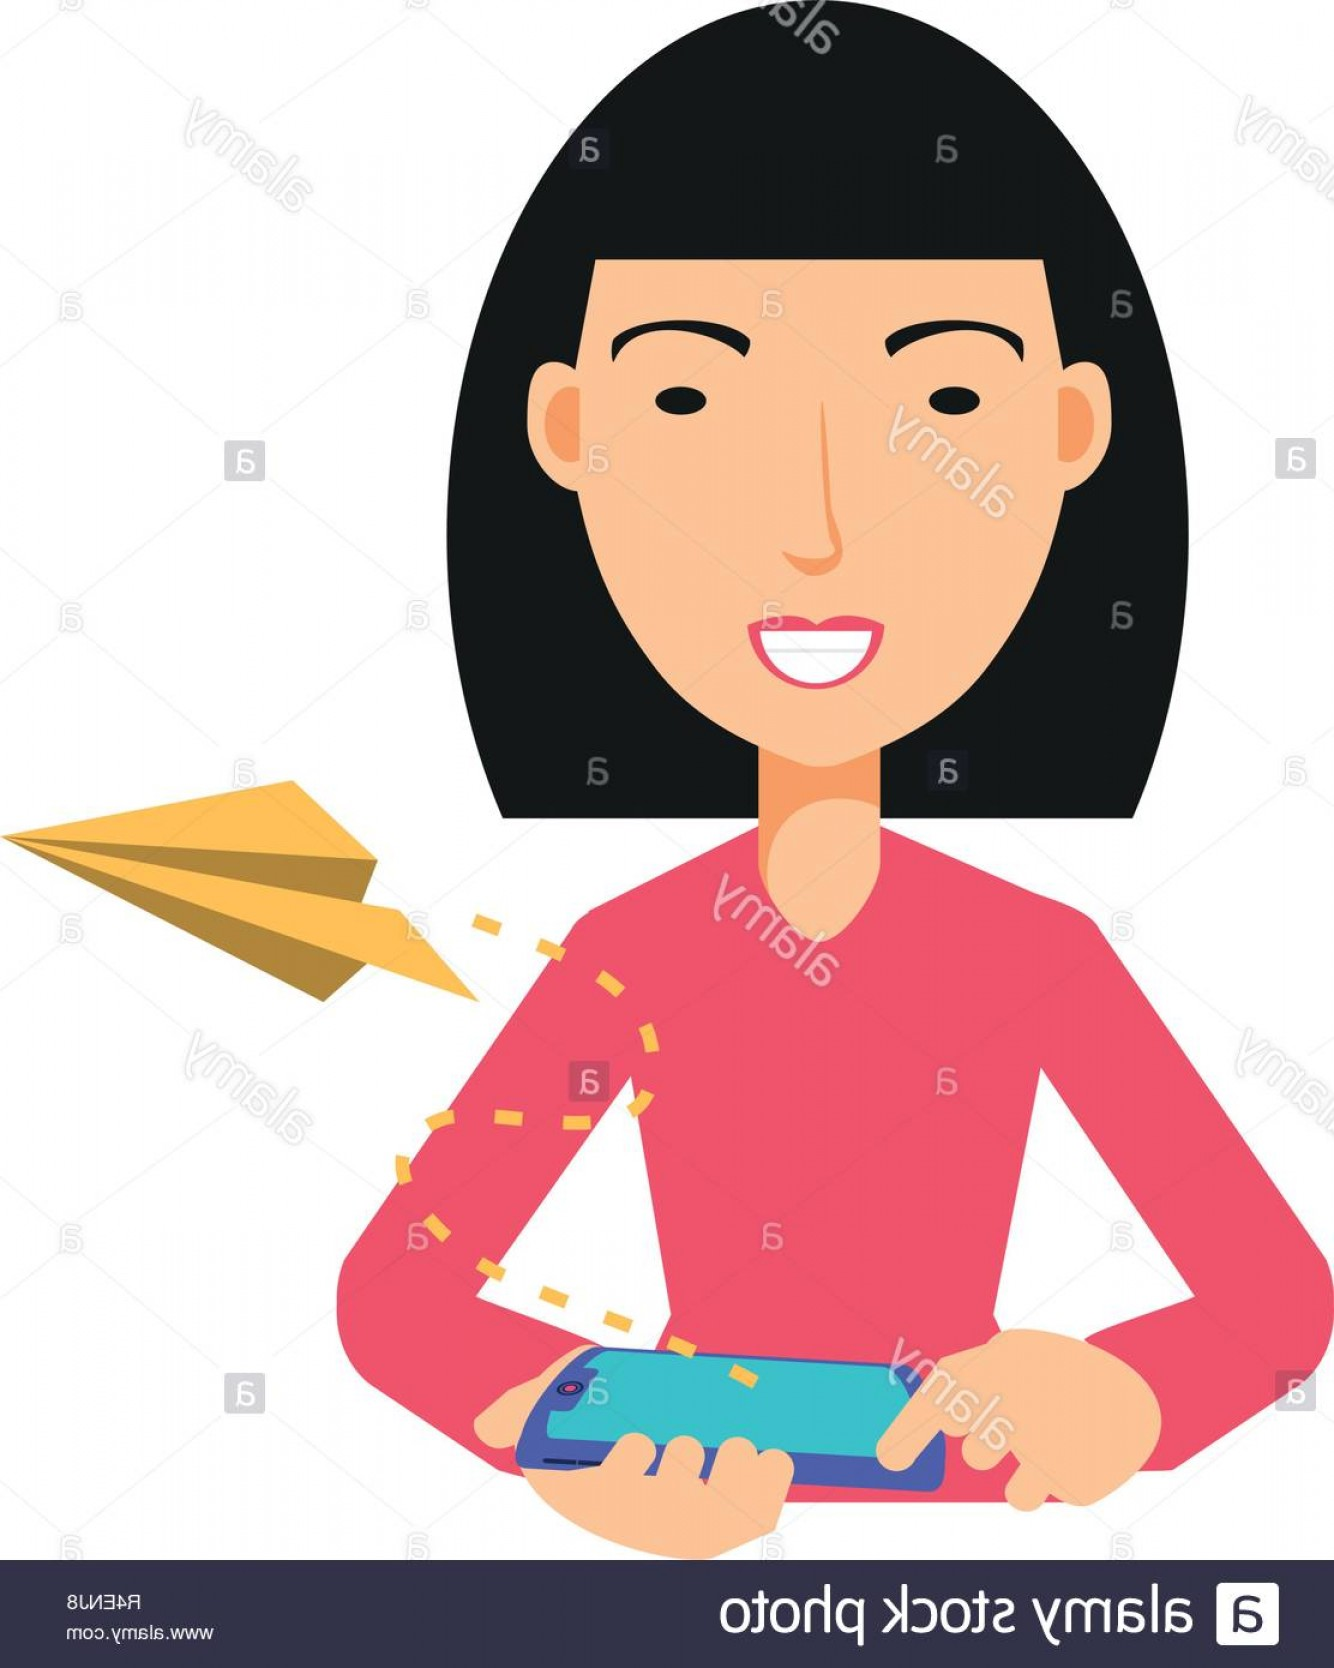 Asian Woman Vector: Asian Woman Using Smartphone And Airplane Paper Vector Illustration Image